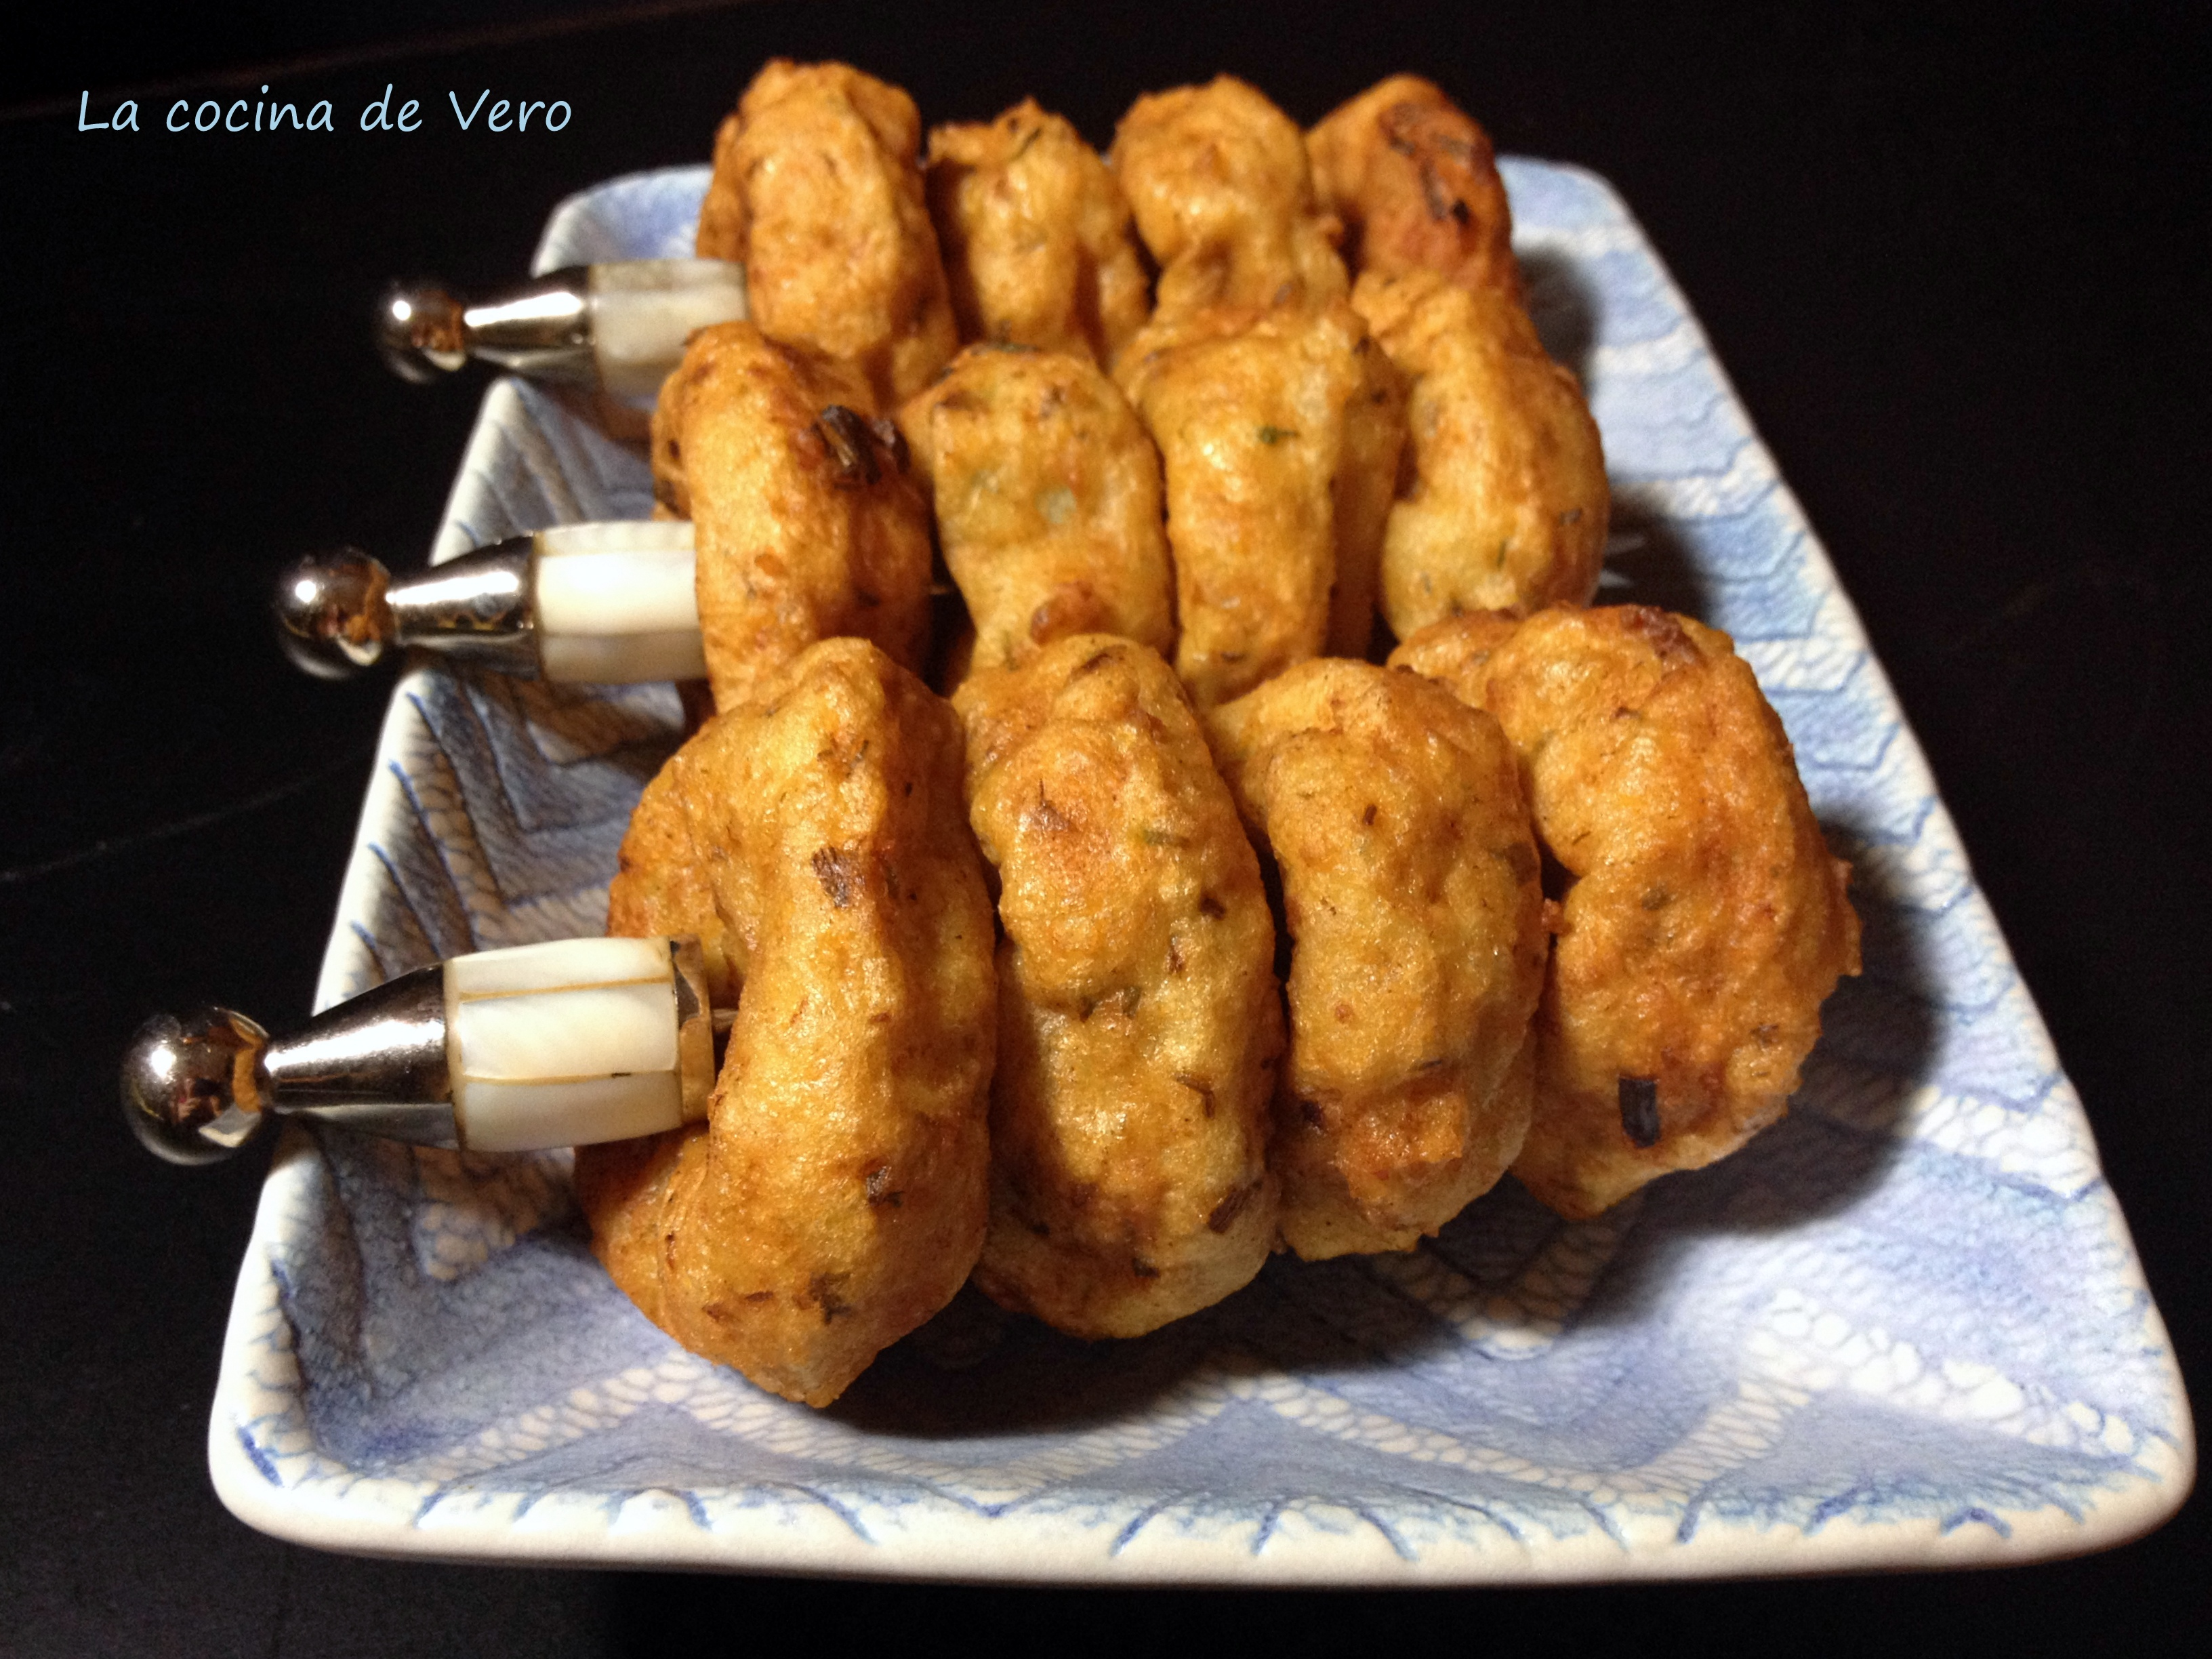 fishcakes birmanos